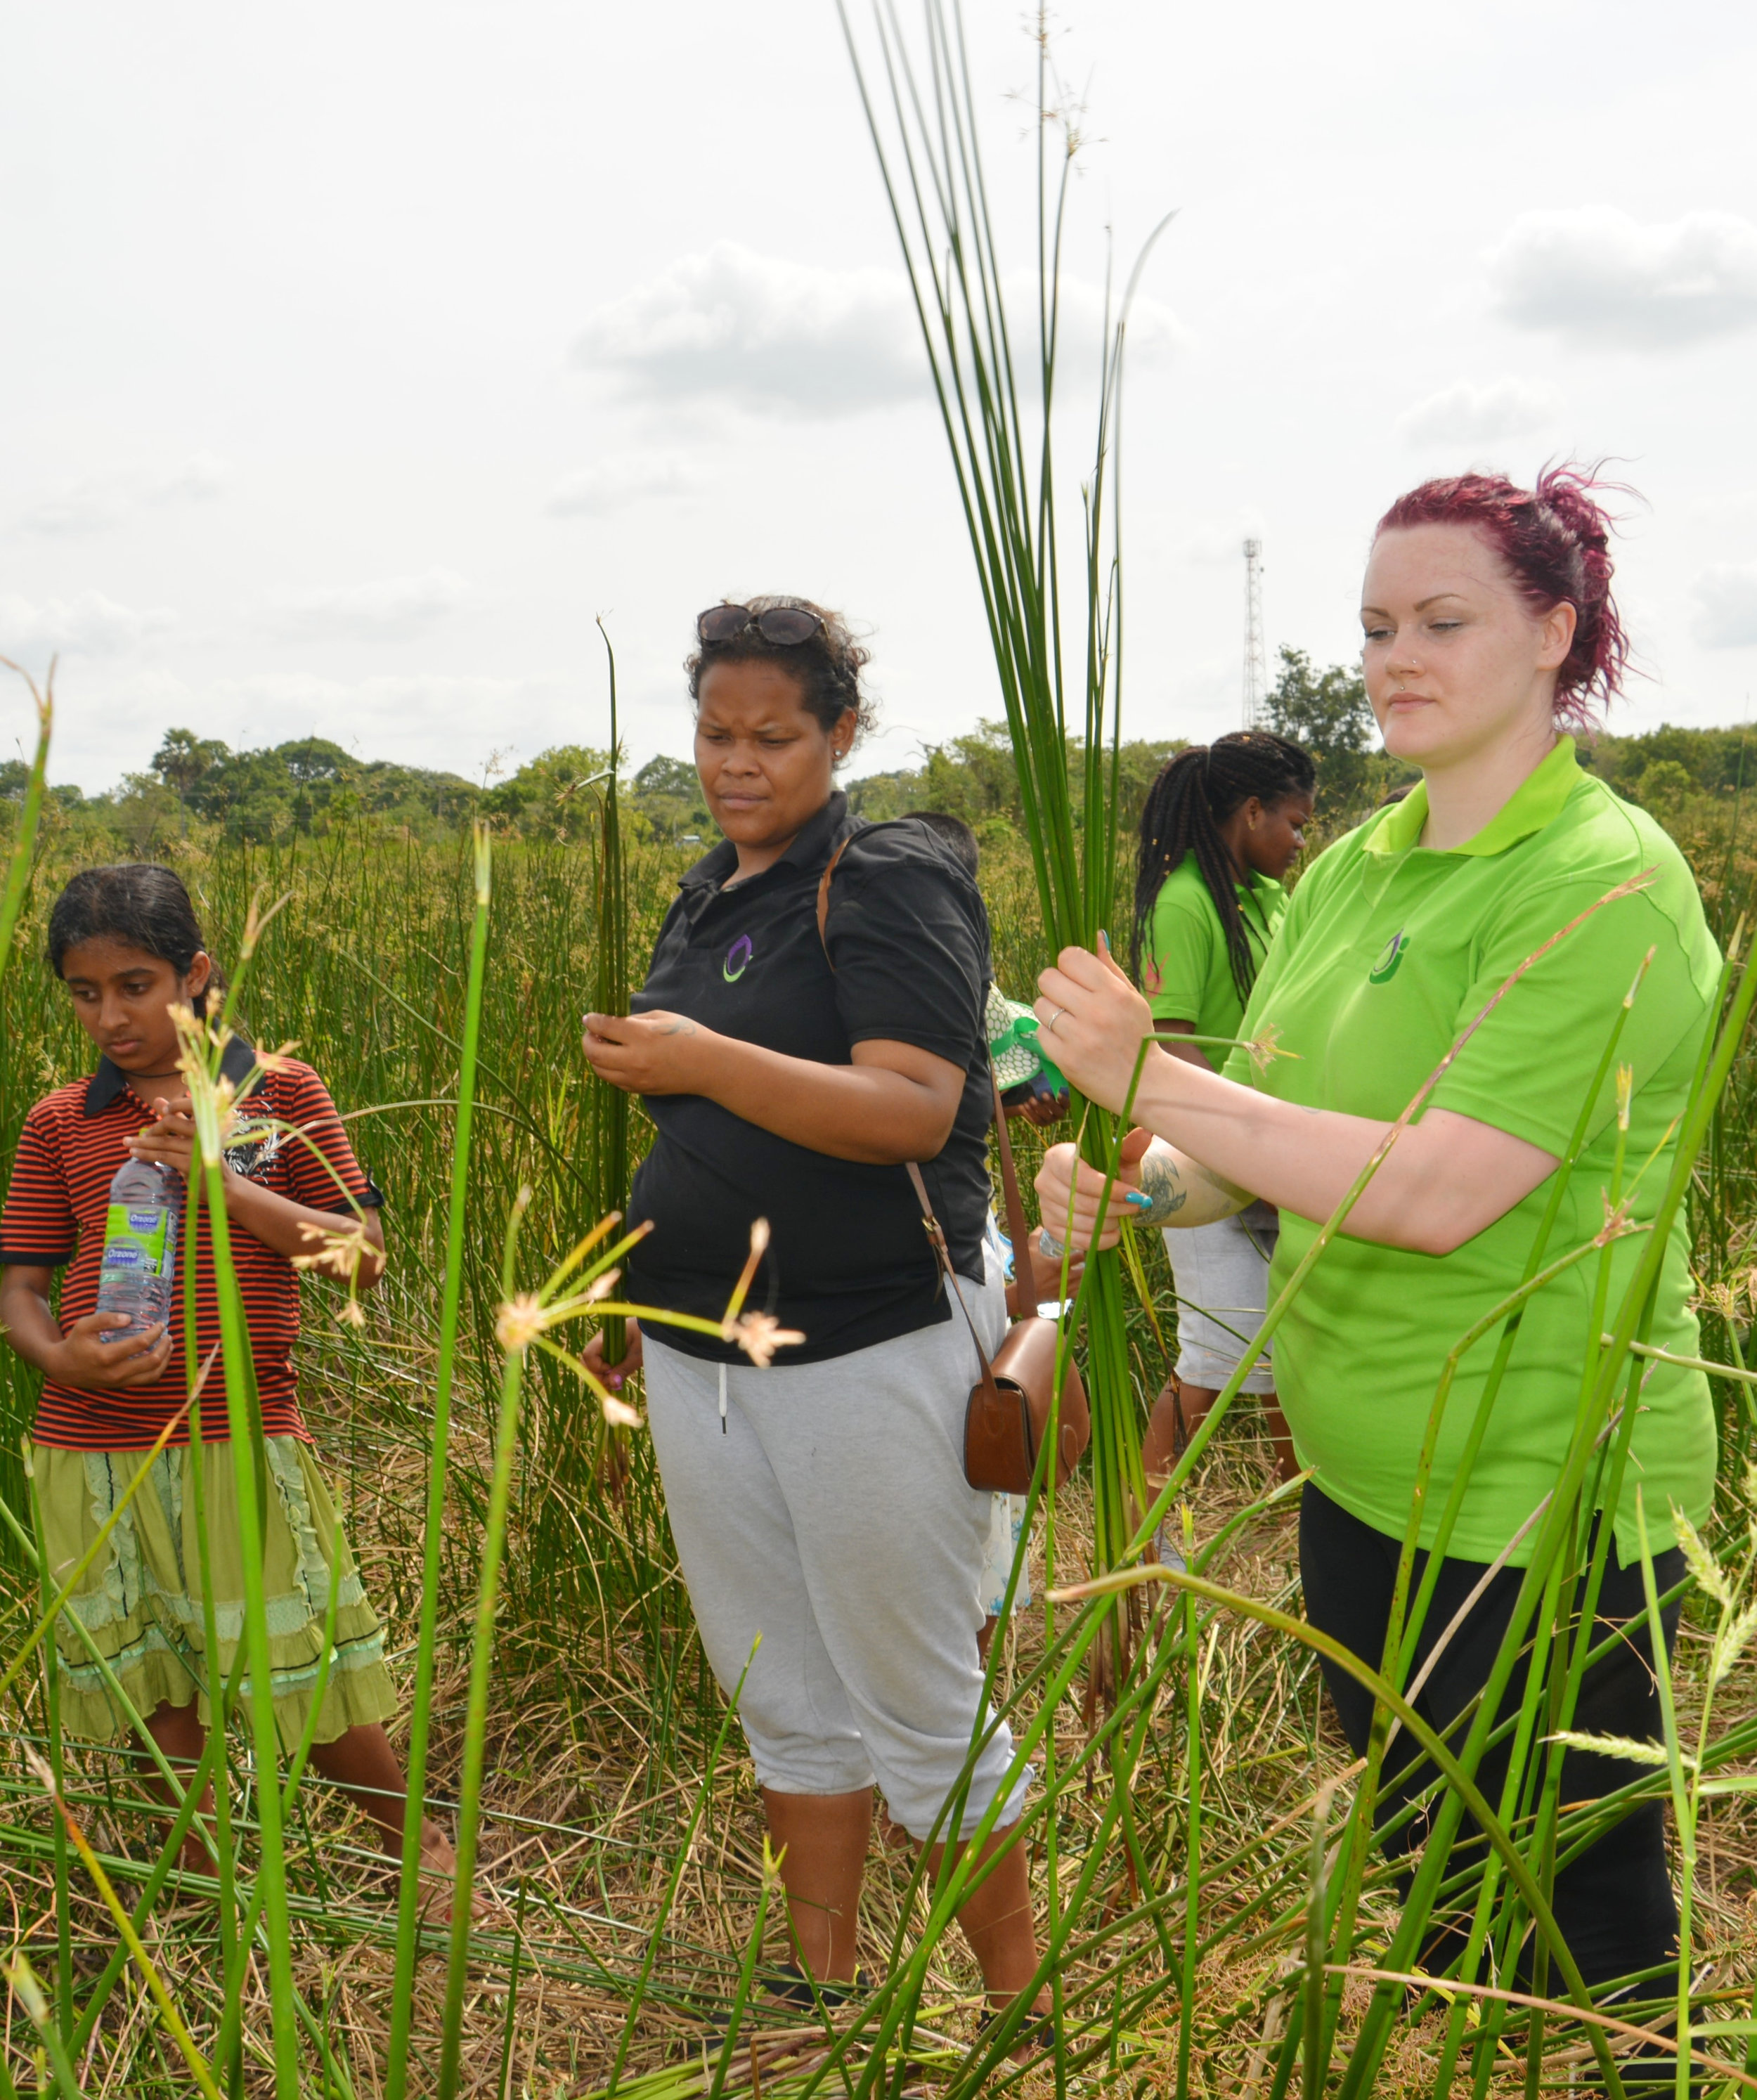 Selecting Reeds for Basket Weaving